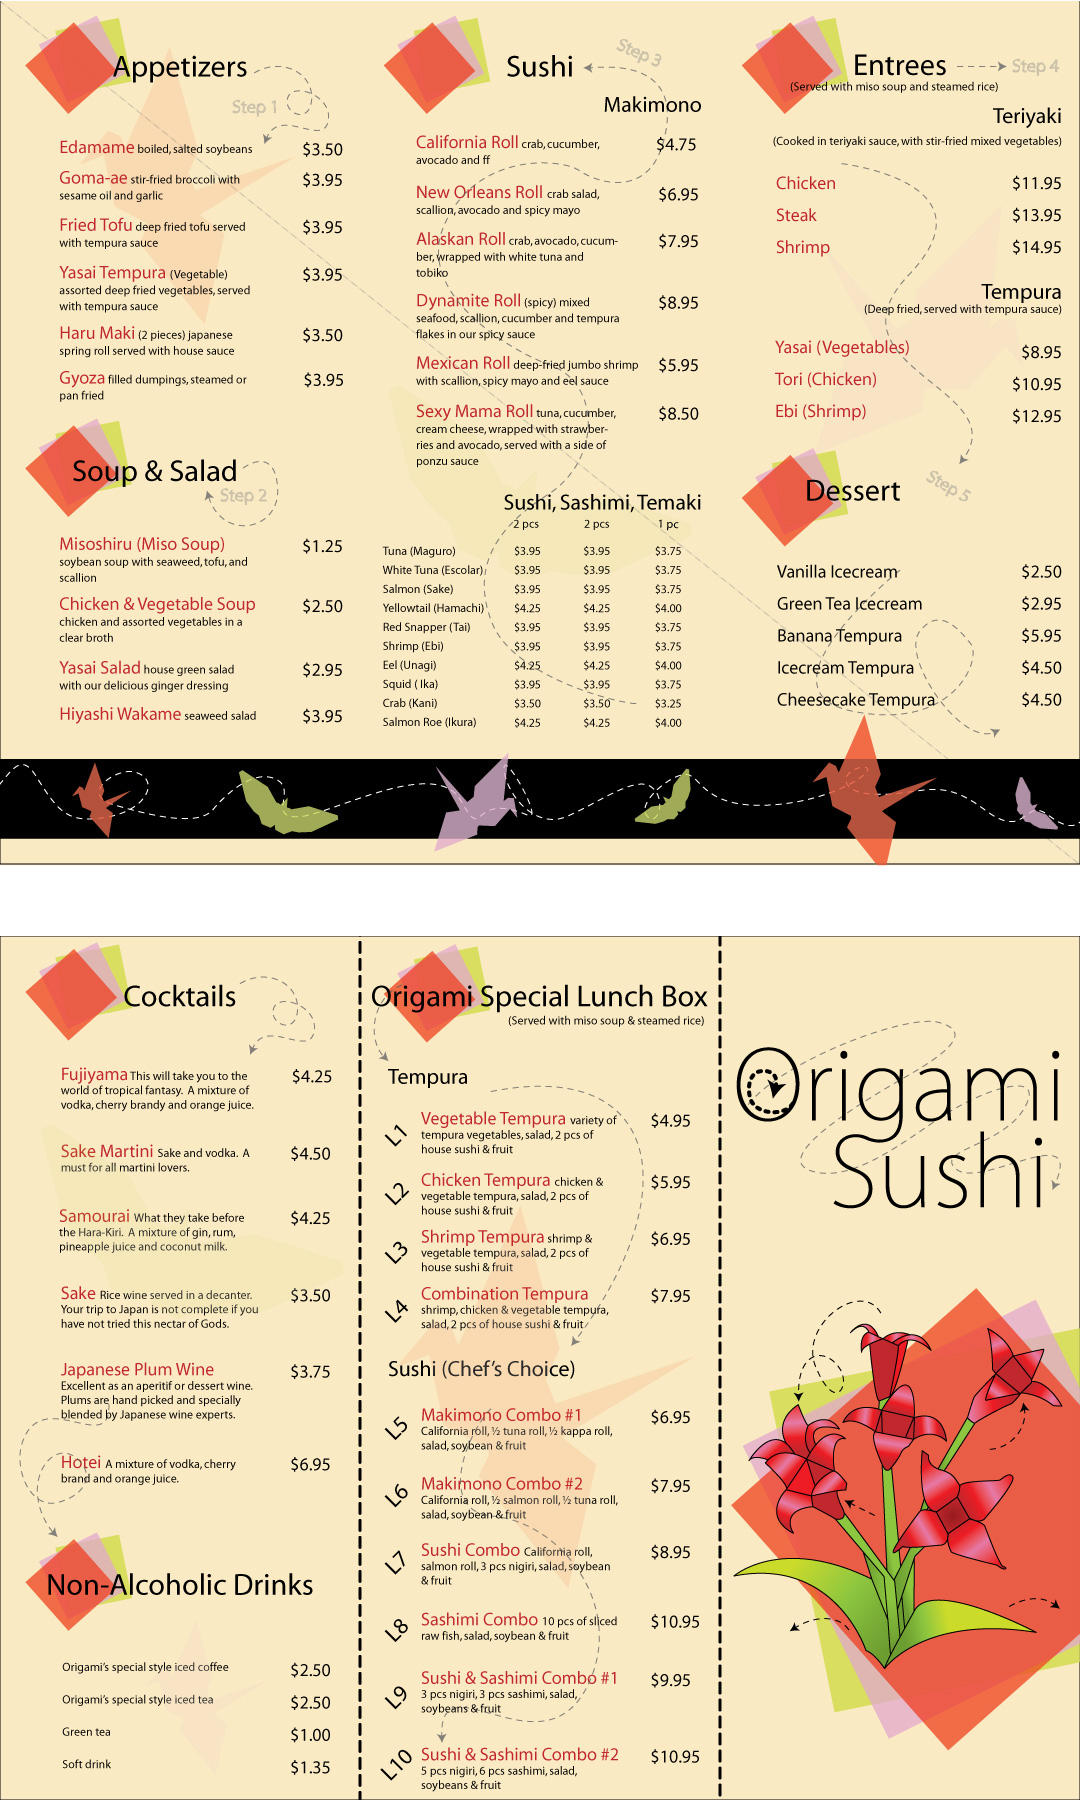 origami sushi menu by cremetangerine on deviantart